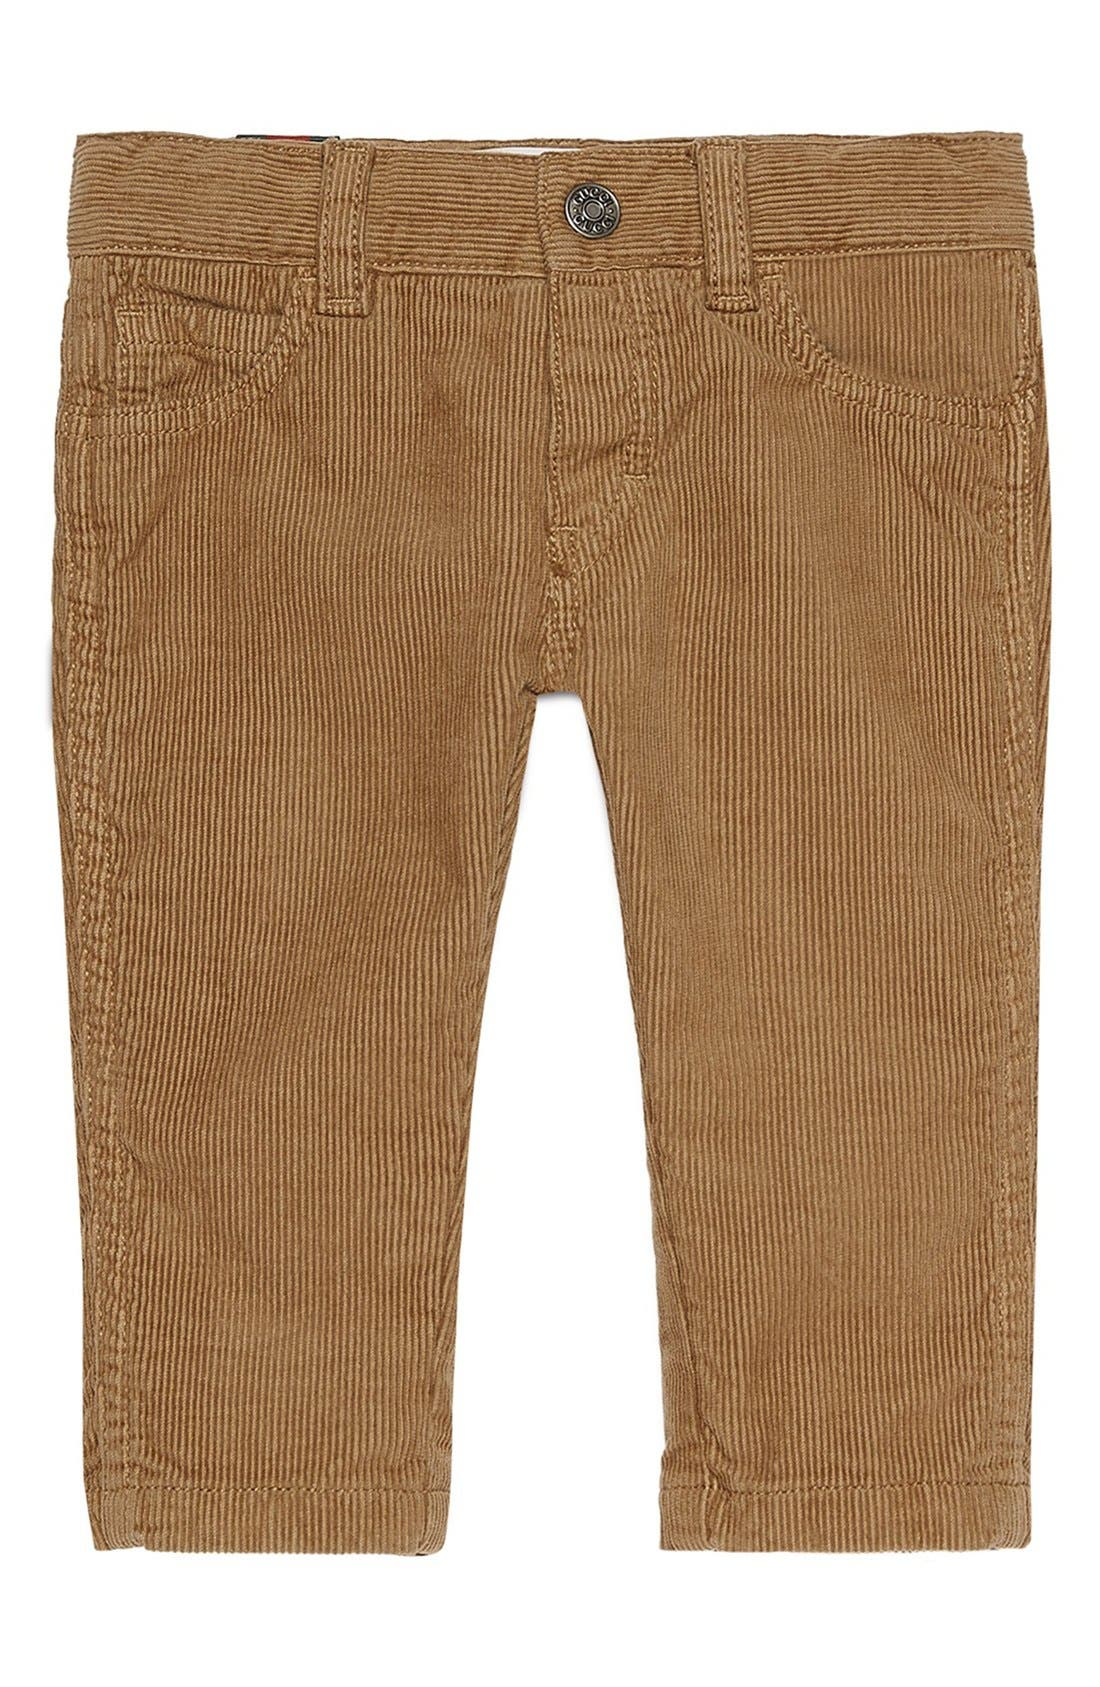 GUCCI Bee Detailed Corduroy Pants